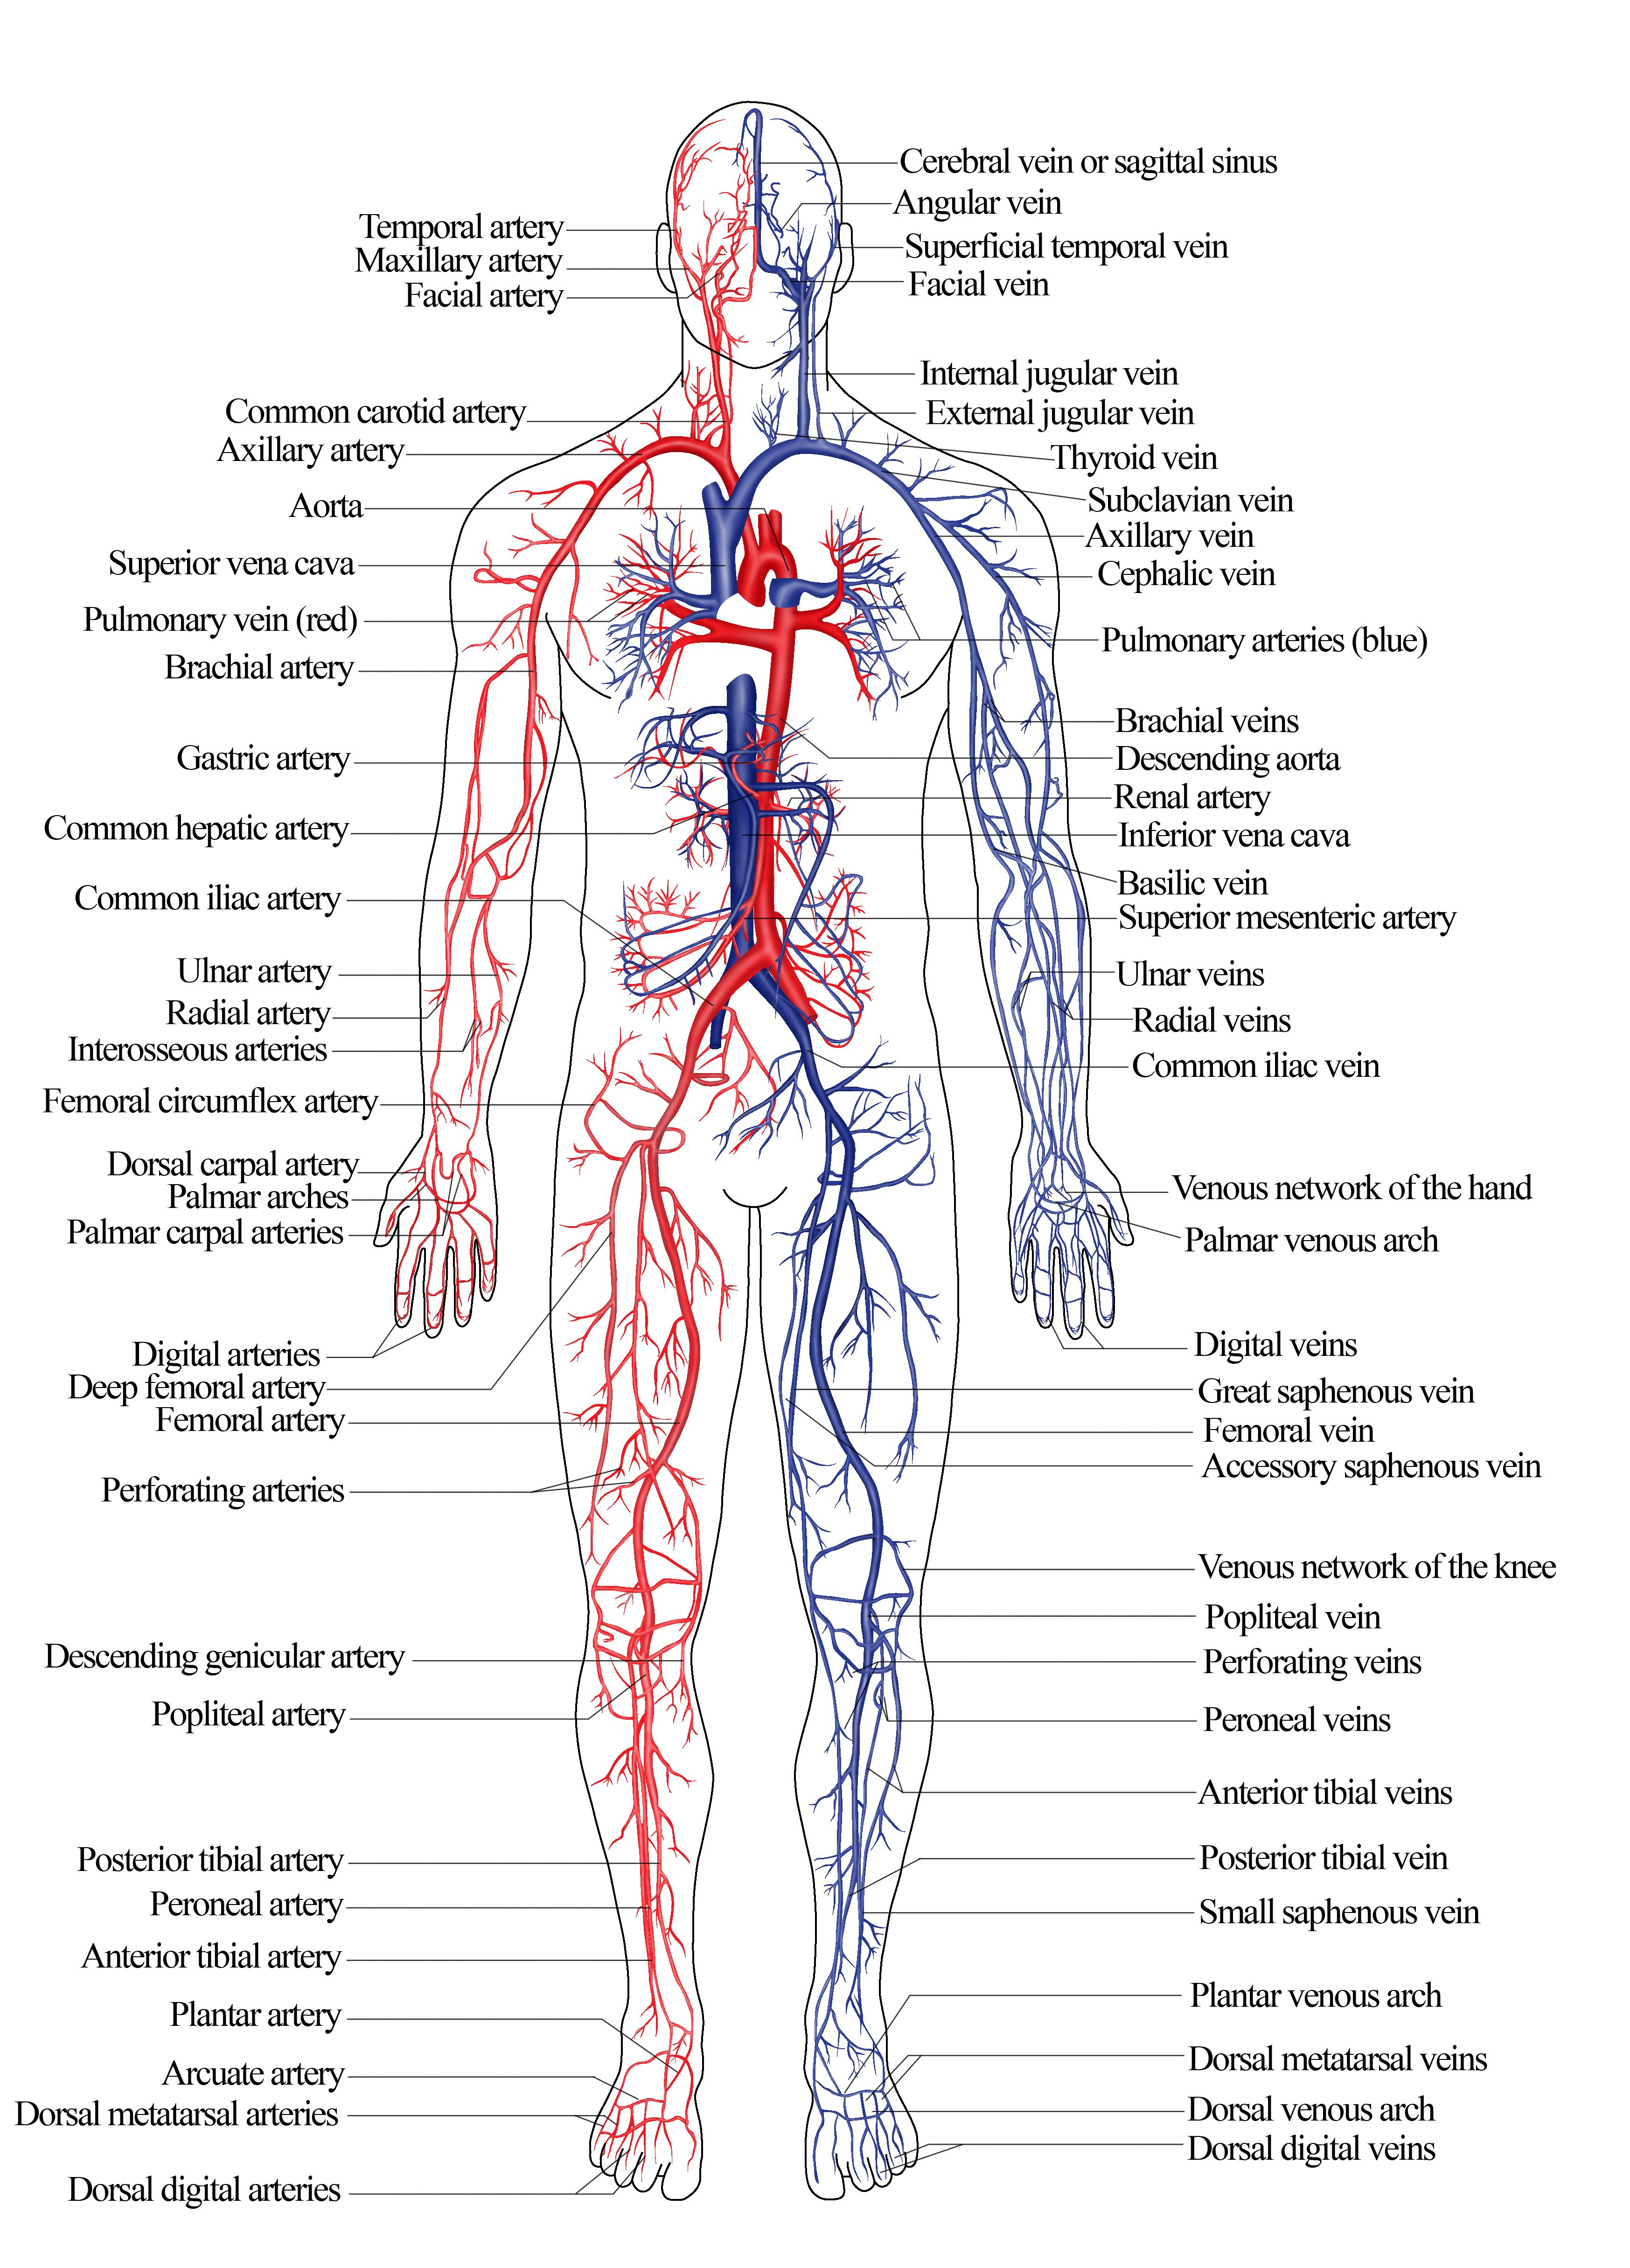 Diagram Of Venous System Of Human Body Nroer File Image Arterial And Venous System Of Humans Human Body Systems Human Body Diagram Body Diagram